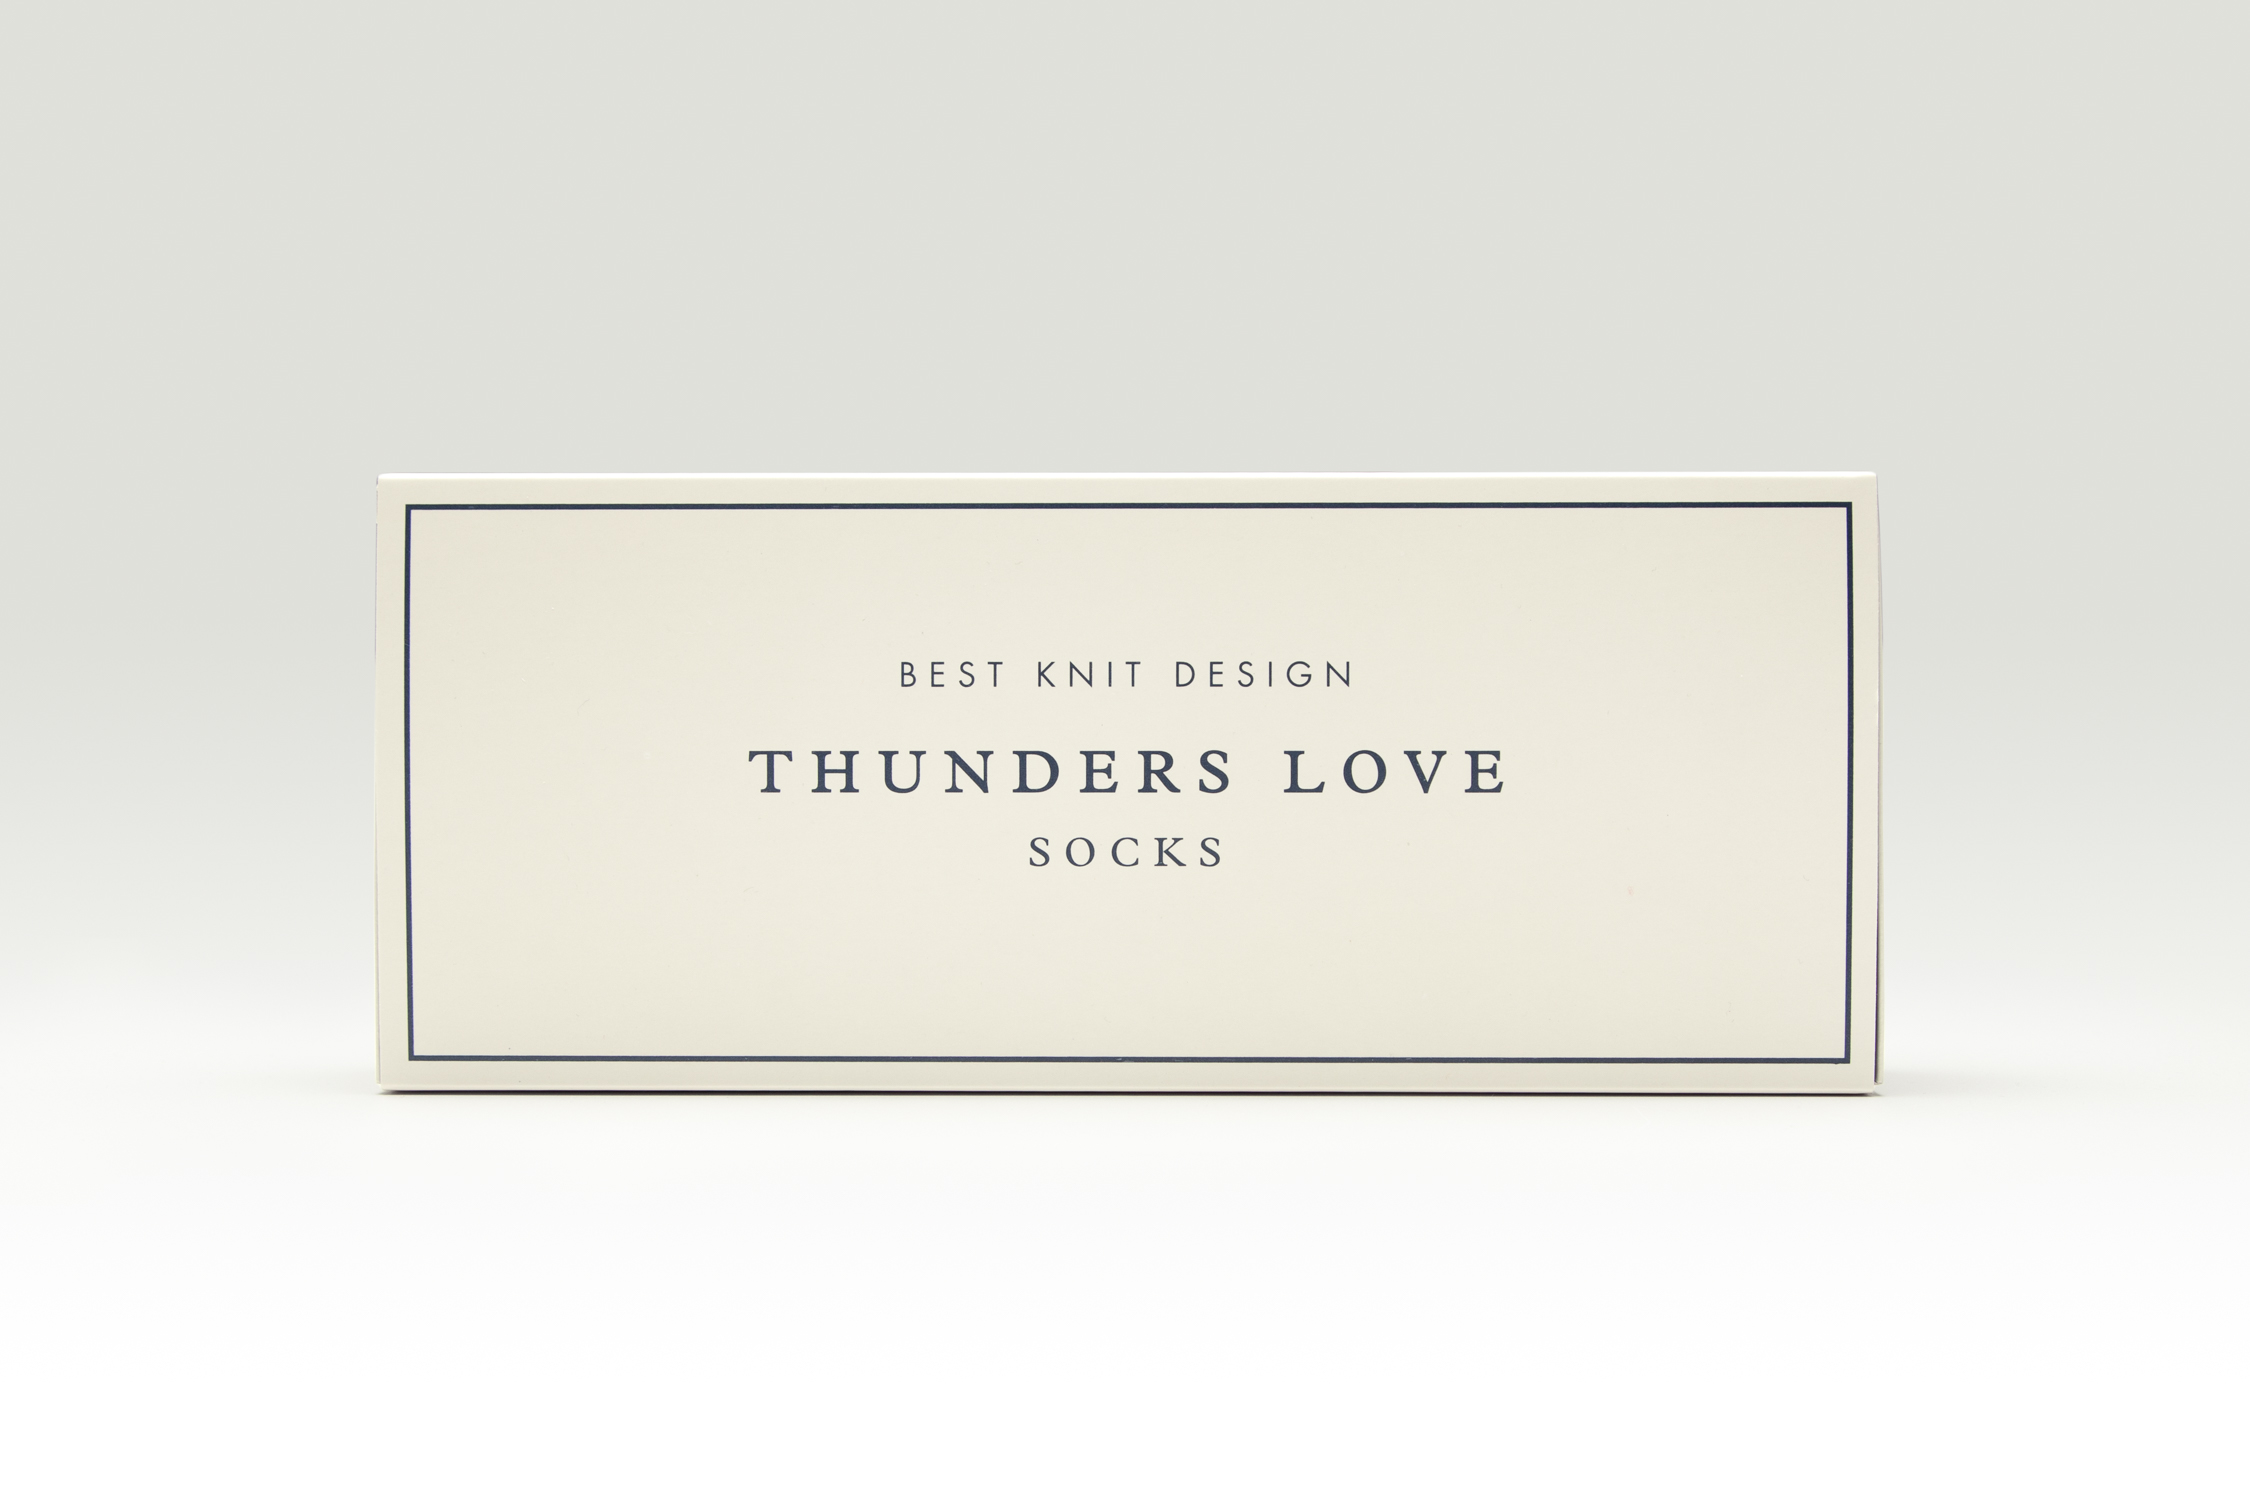 Thunders-Love-Marc-Oortman-1